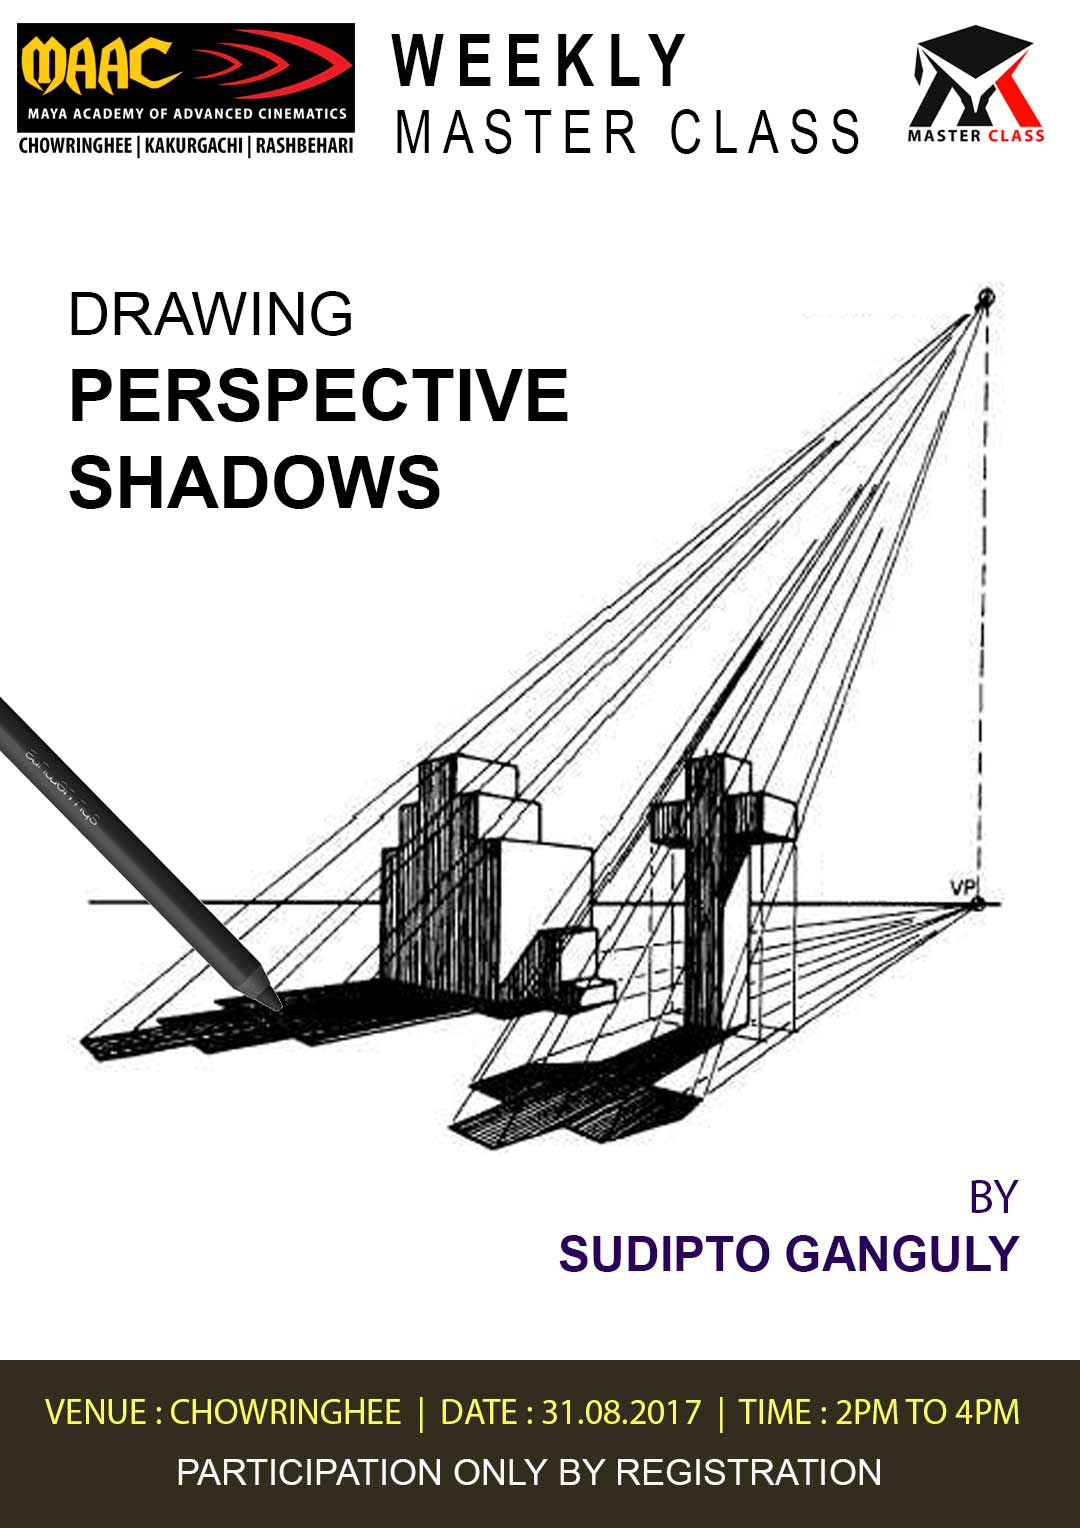 Weekly Master Class on Drawing Perspective Shadows - Sudipto Ganguly